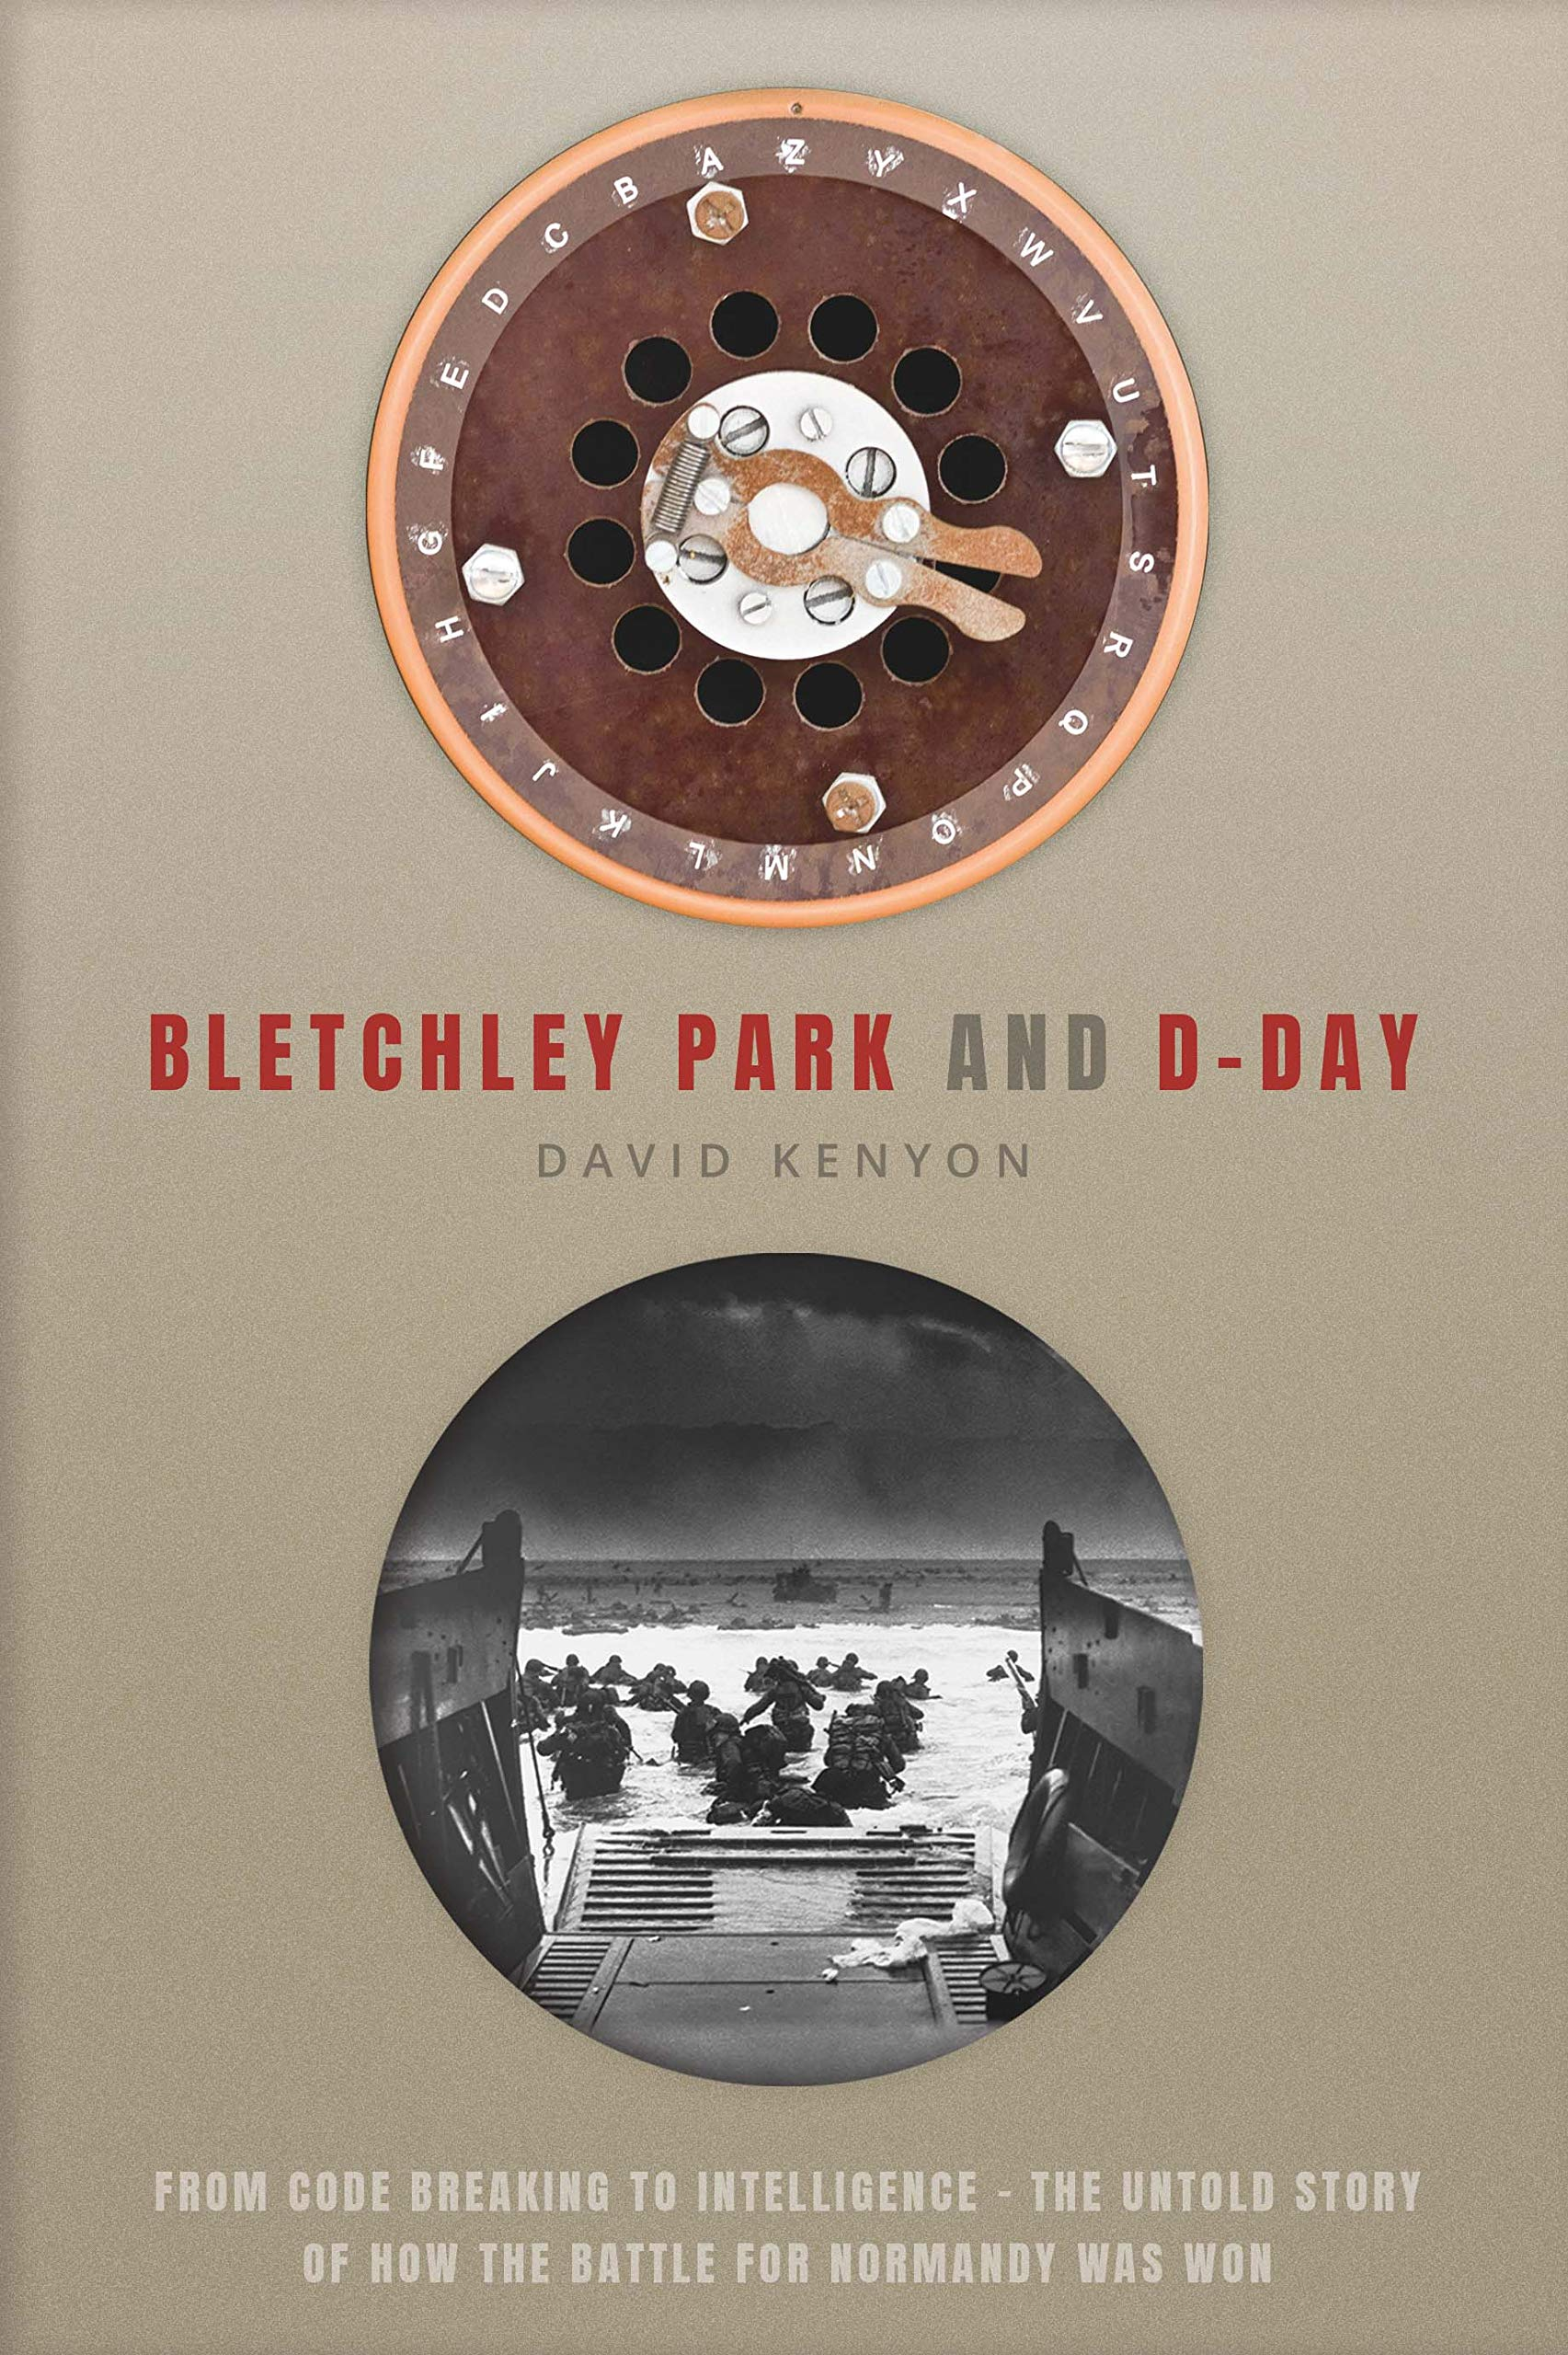 Bletchley Park and D Day with David Kenyon